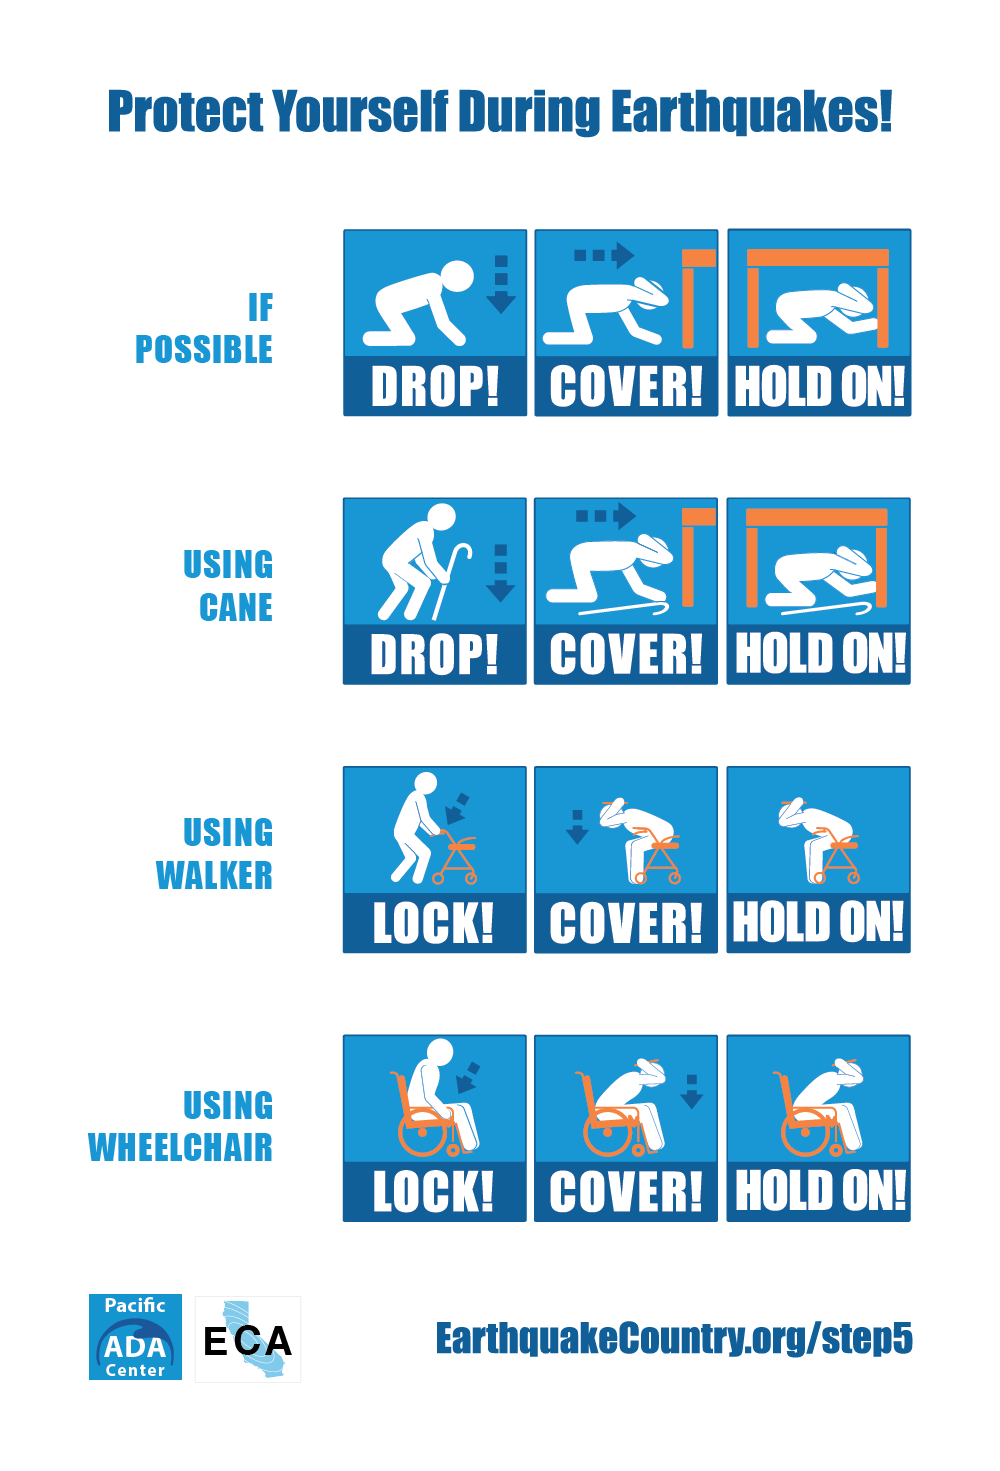 Drop, cover, and hold on instructions and images for people with and without disabilities and other access or functional needs.